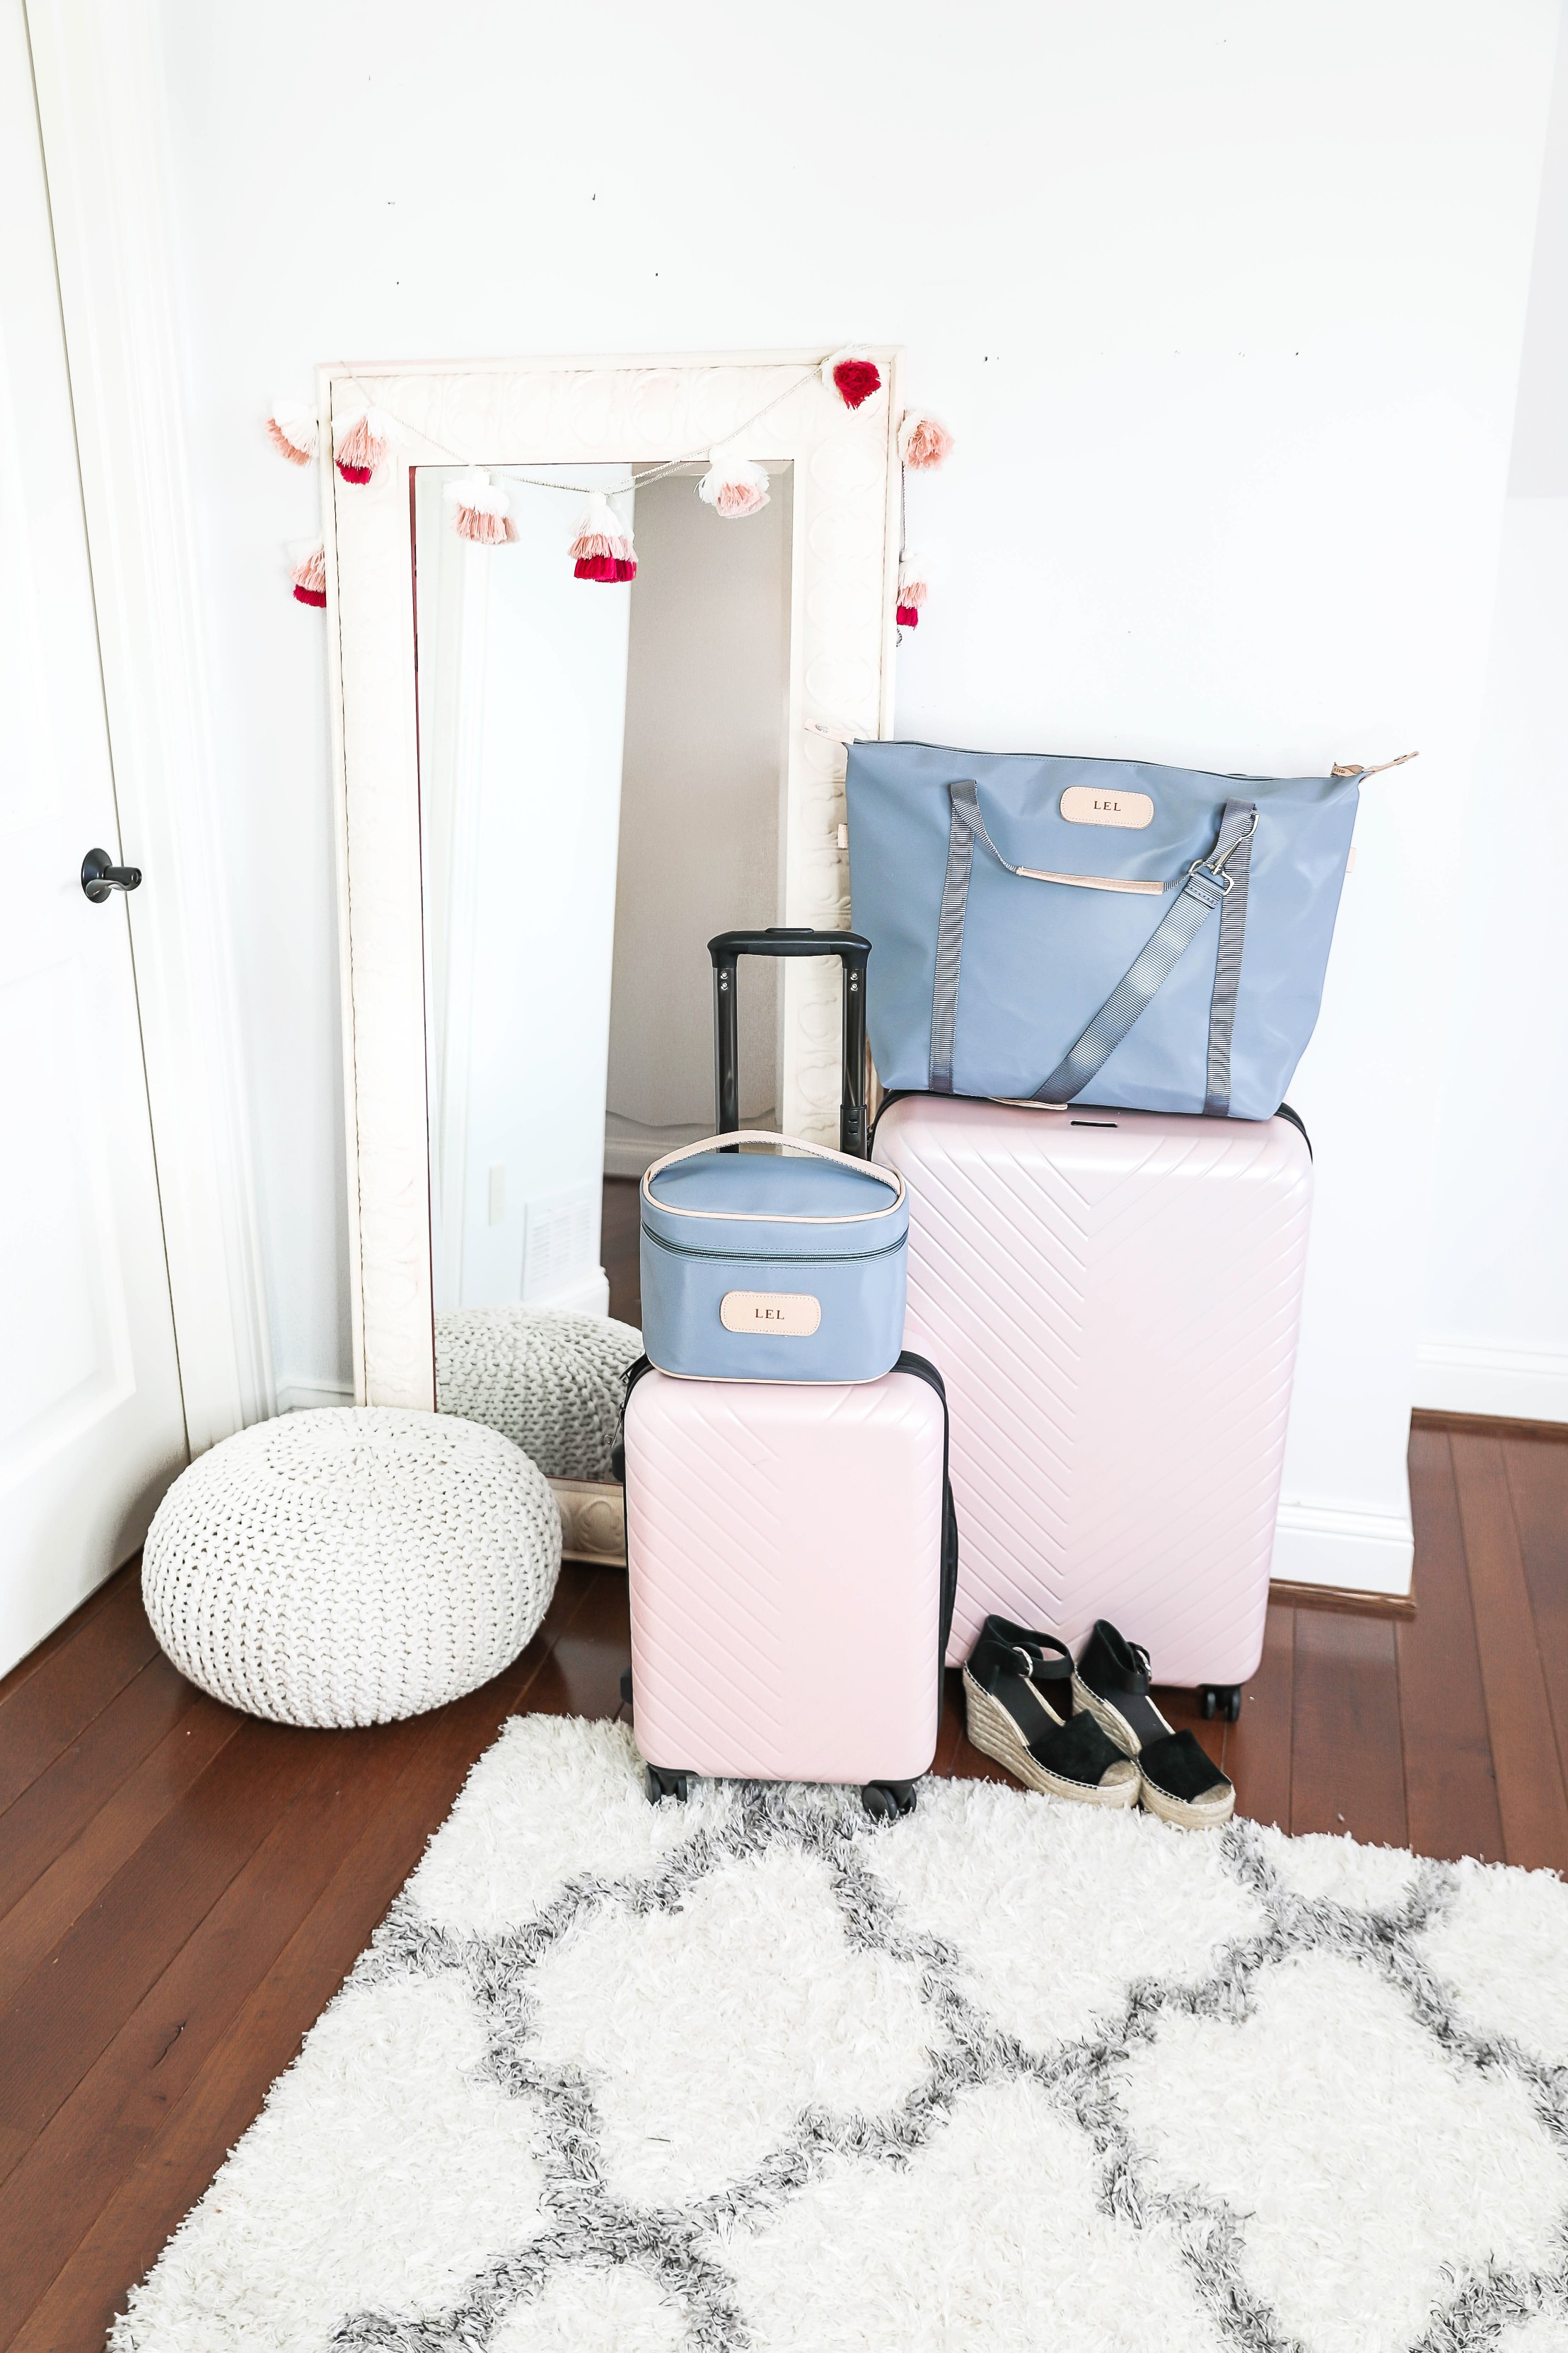 Packing tips for a trip from the queen of overpacking! I use the cutest Nordstrom suitcase and Jon Hart luggage for my trips! Spring break packing with the latest spring trends! How cute are these ugg sneakers, Marc Fisher wedges? Details on fashion blog daily dose of charm by lauren lindmark